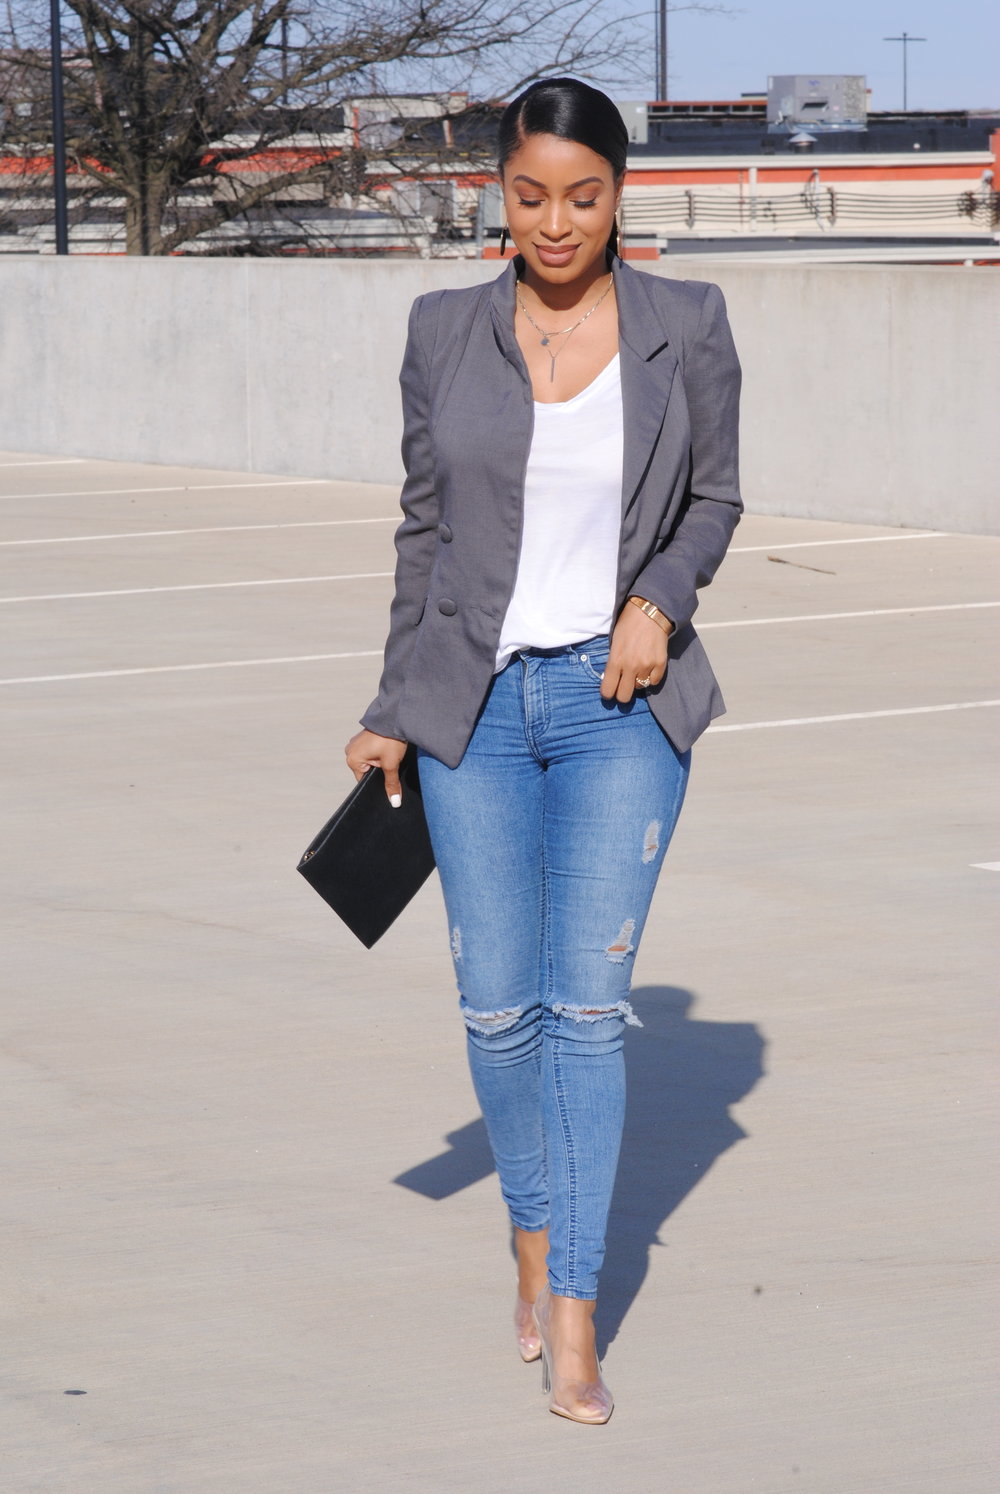 4. - Blazer and a pair of heels